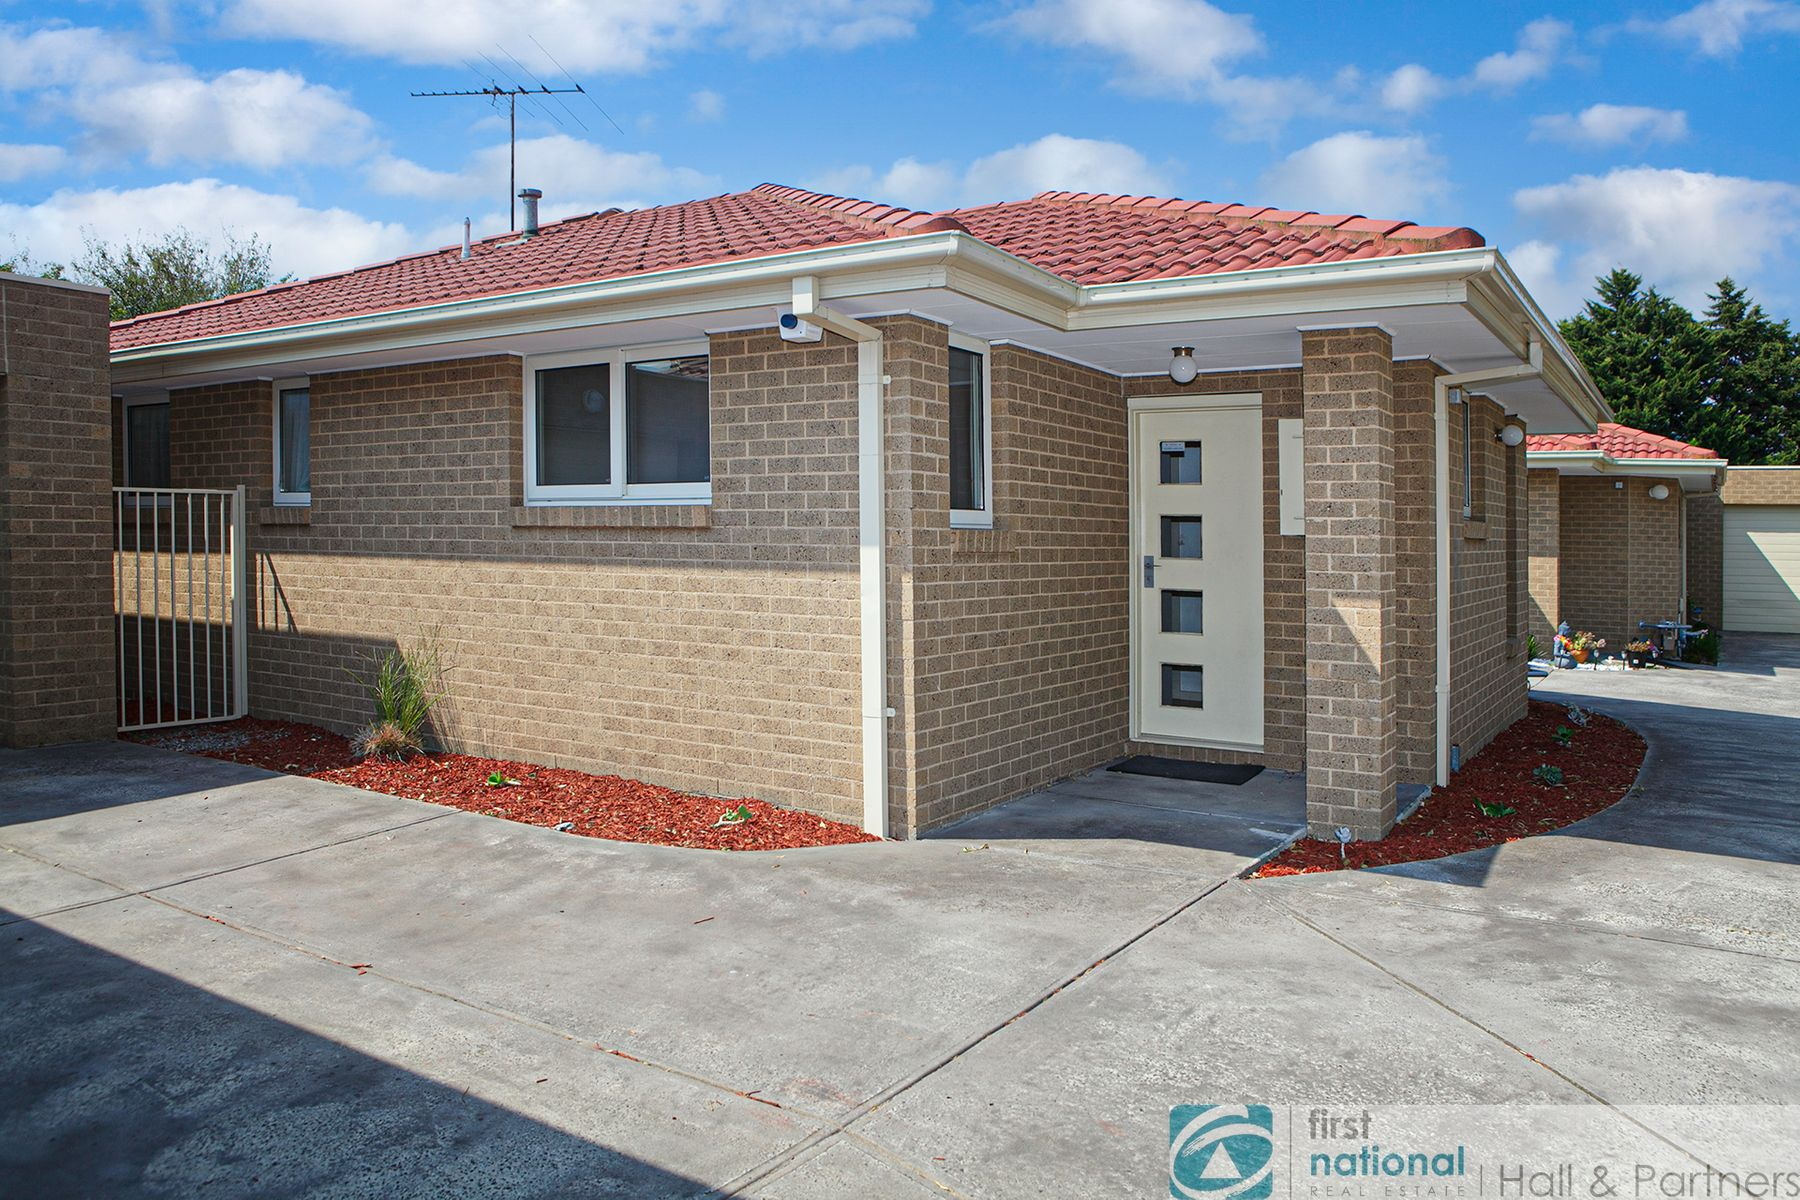 2/9 The Birches, Doveton, VIC 3177